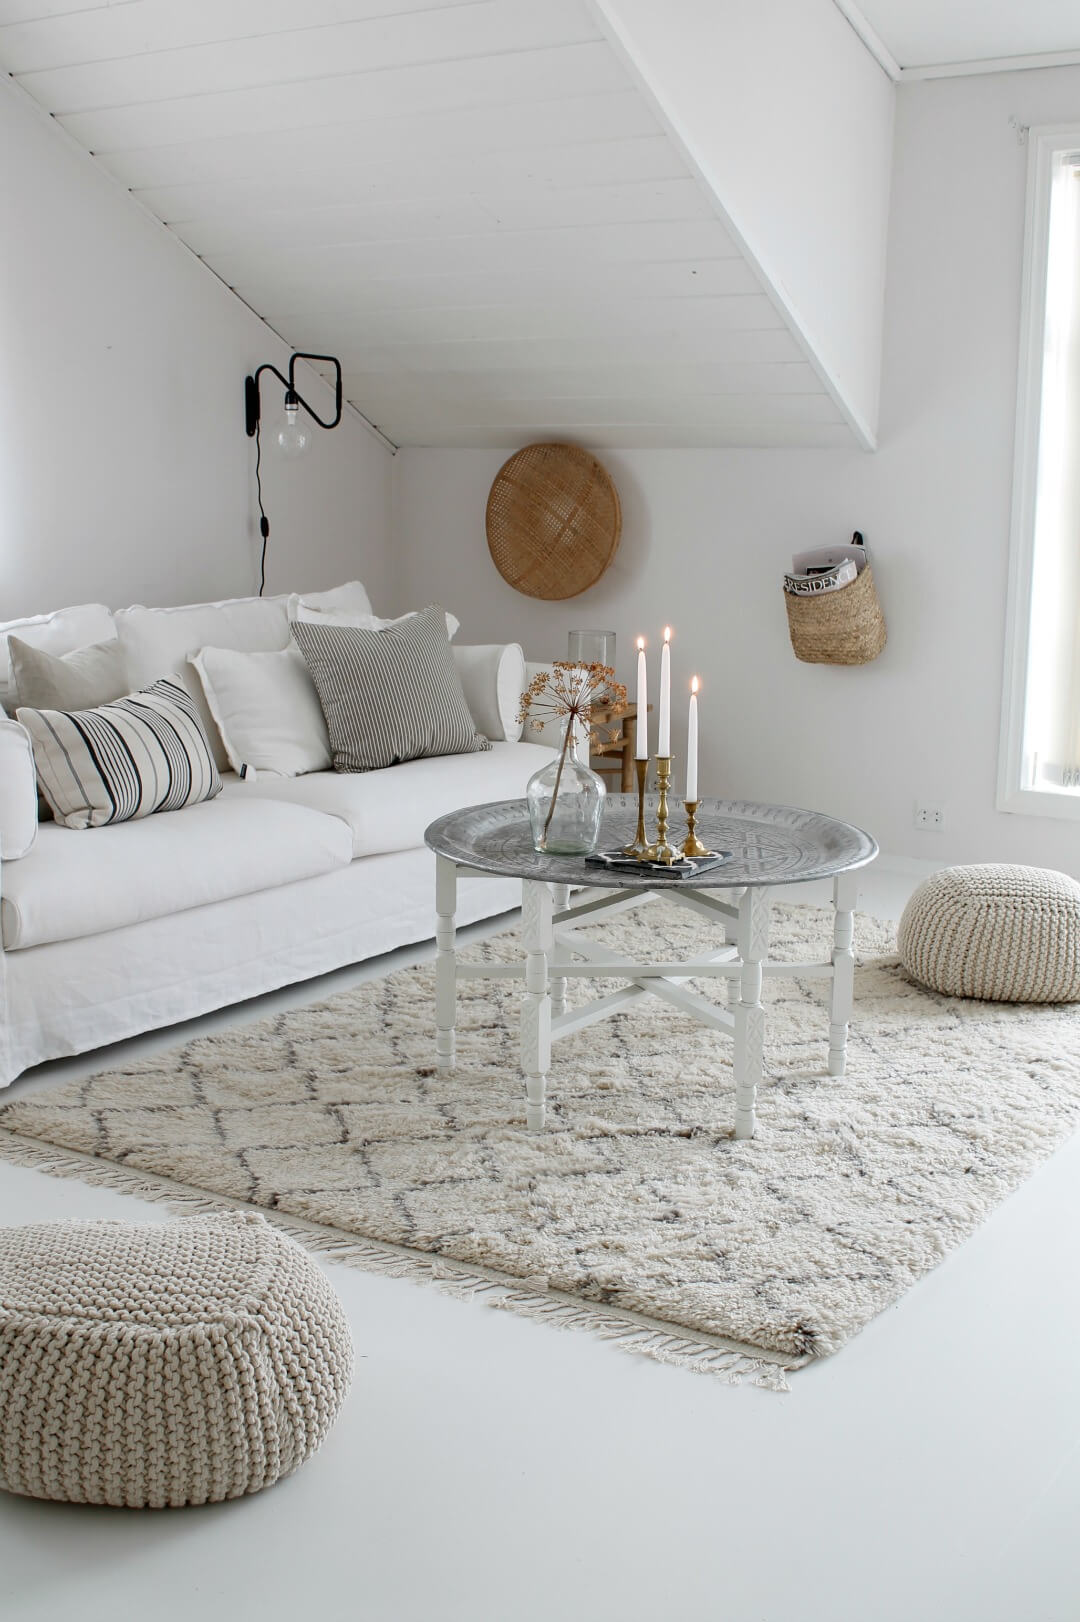 25+ Best Small Living Room Decor and Design Ideas for 2020 on Small Living Room Decor Ideas  id=79136